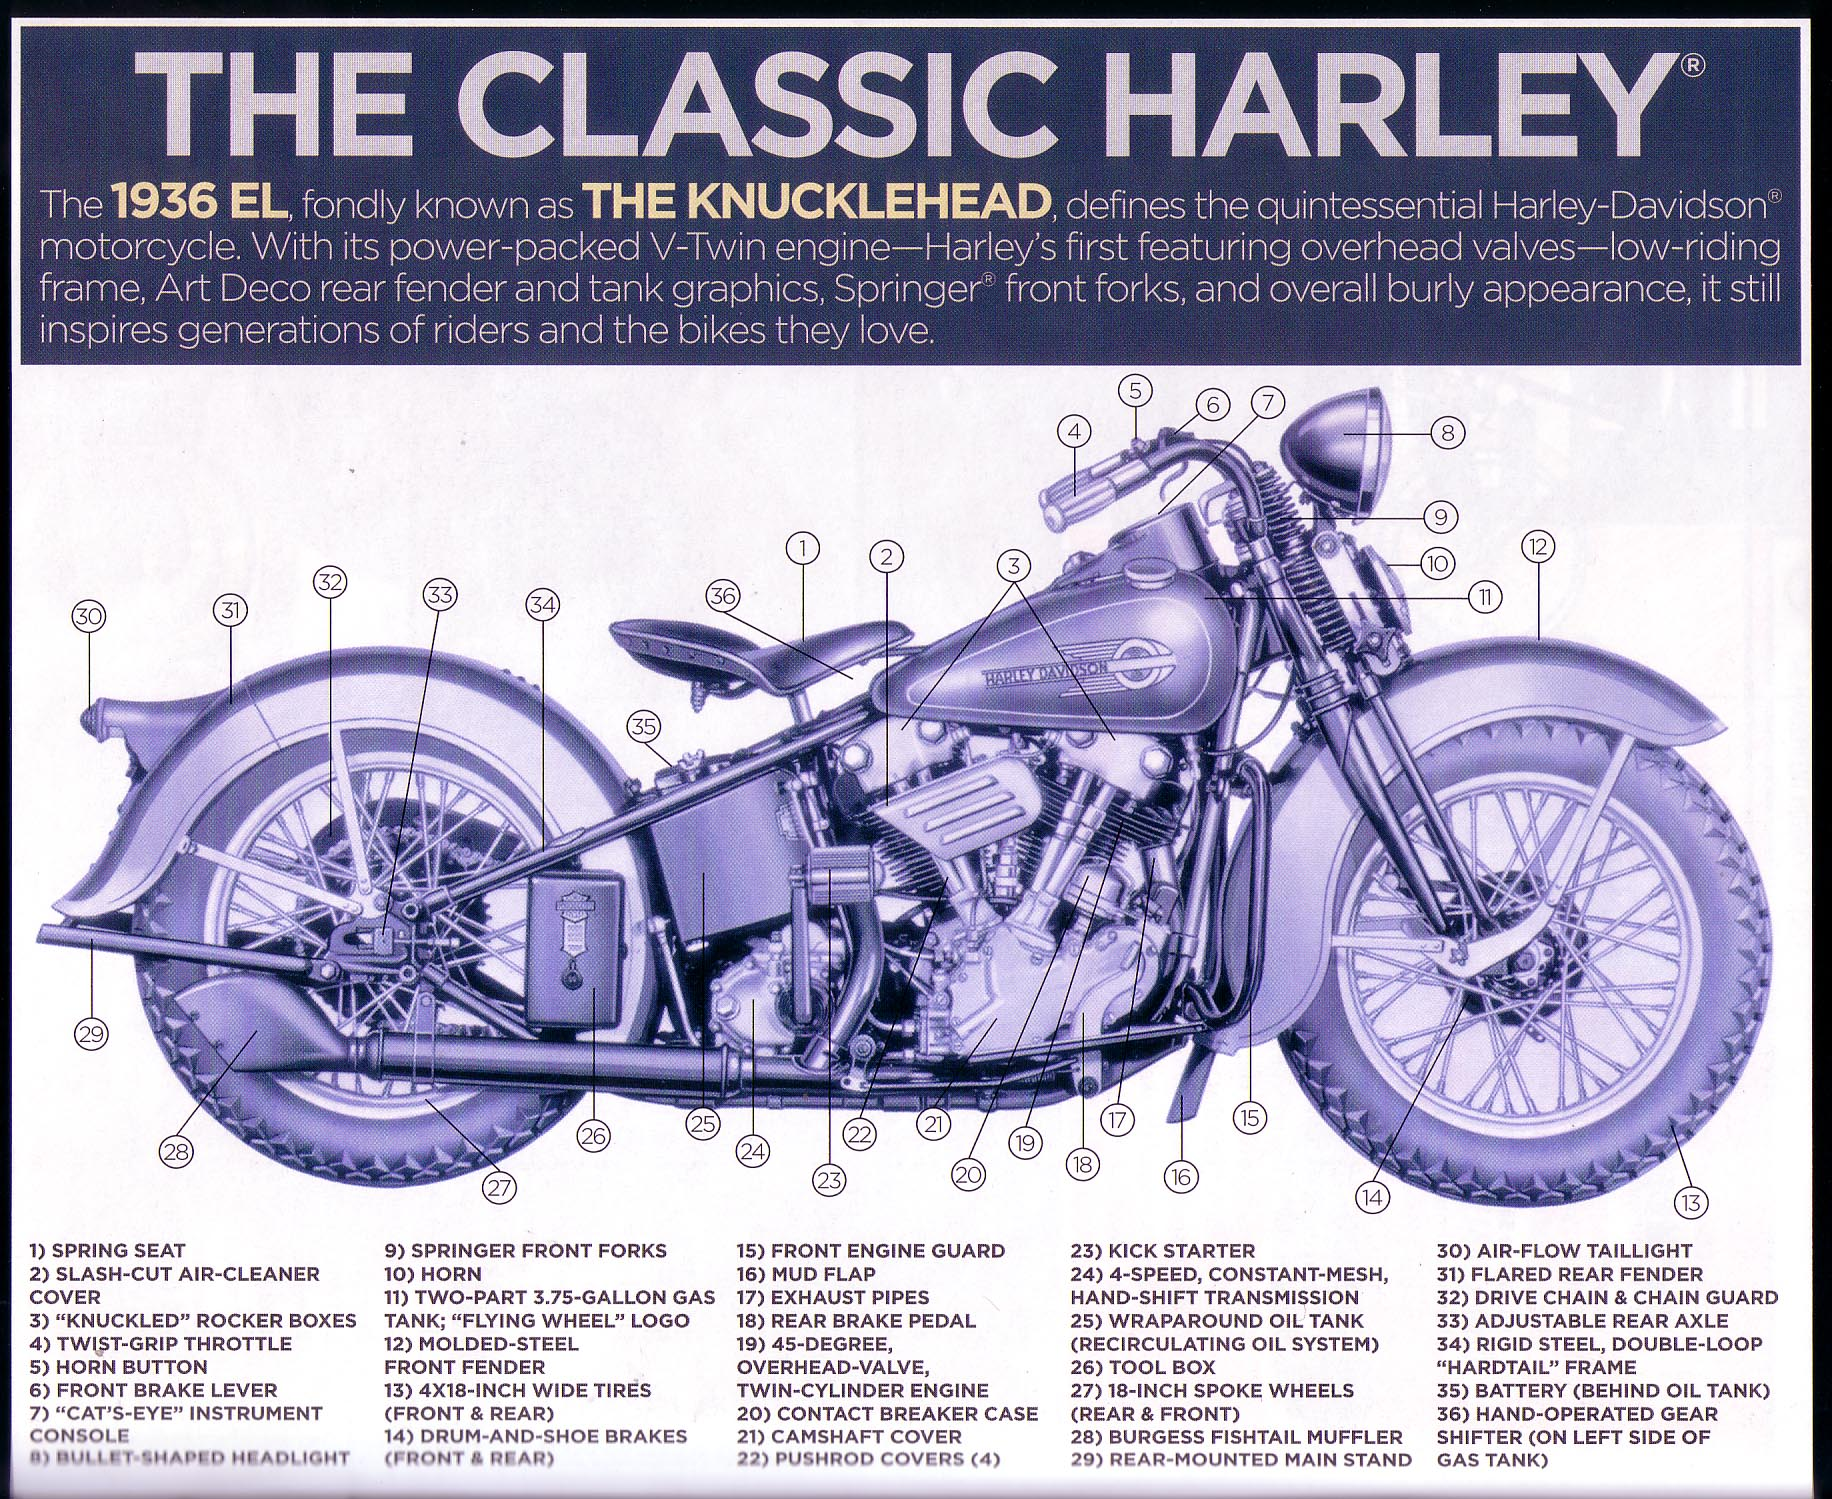 Harley Davidson Chopper Wiring Diagram : Dyna chopper wiring diagram get free image about